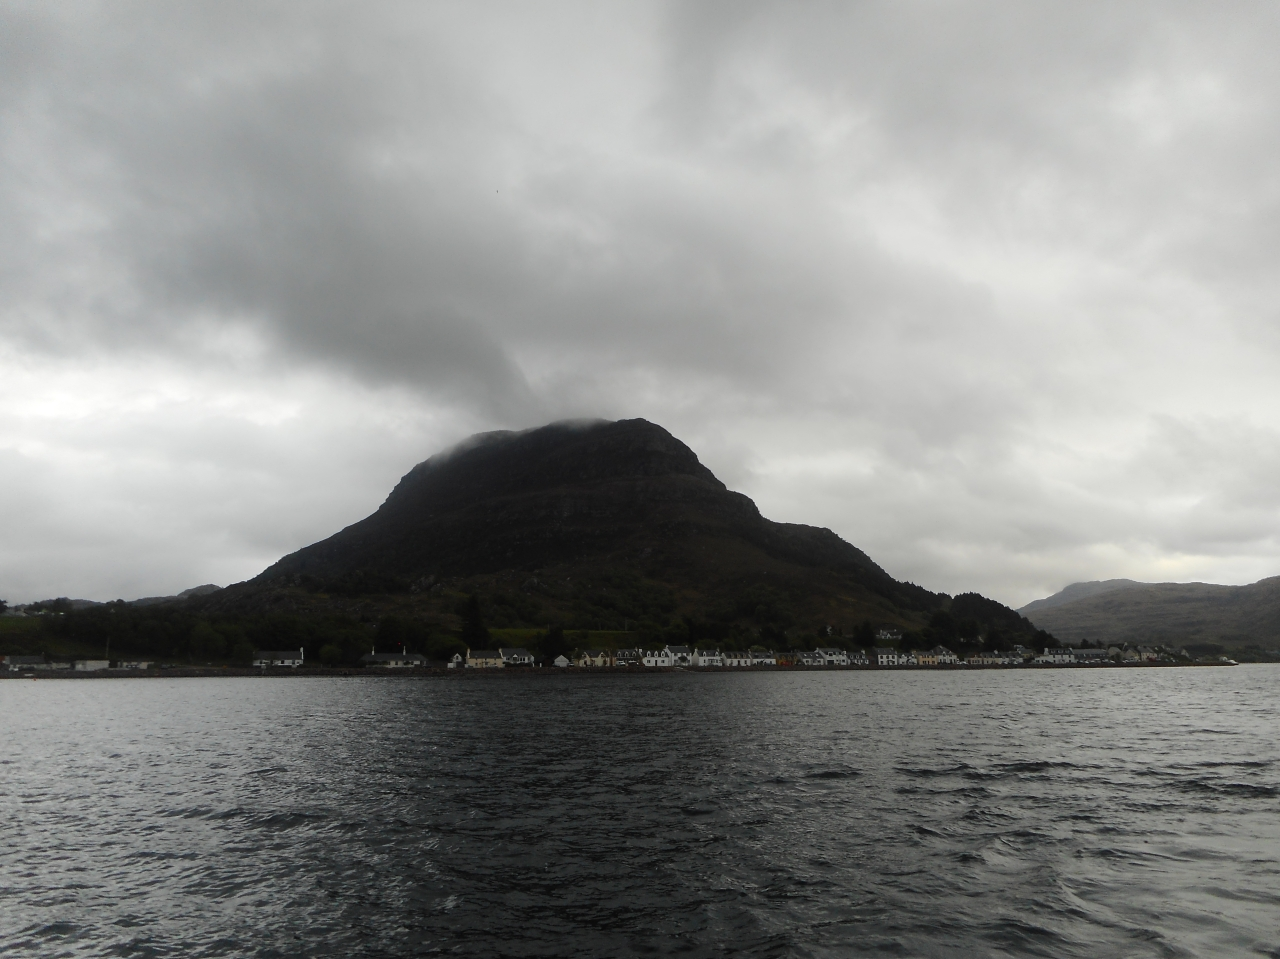 Loch Torridon, village with a pub!